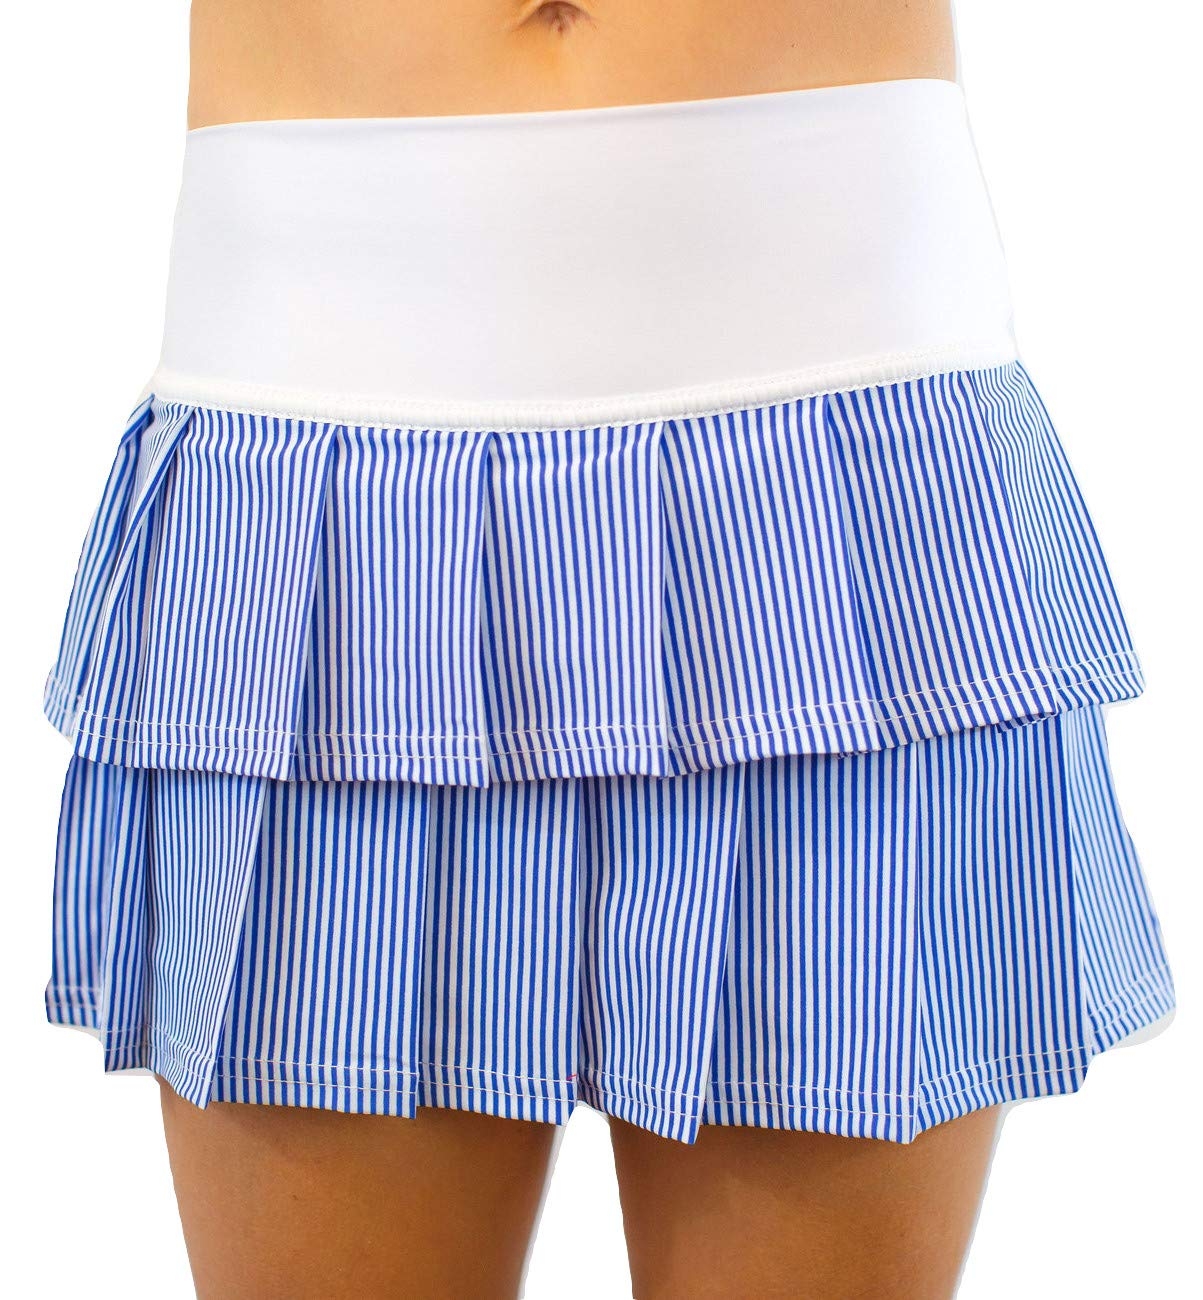 Faye+Florie Lisa 2 Tier Tennis Skirt (Seersucker, X-Small)